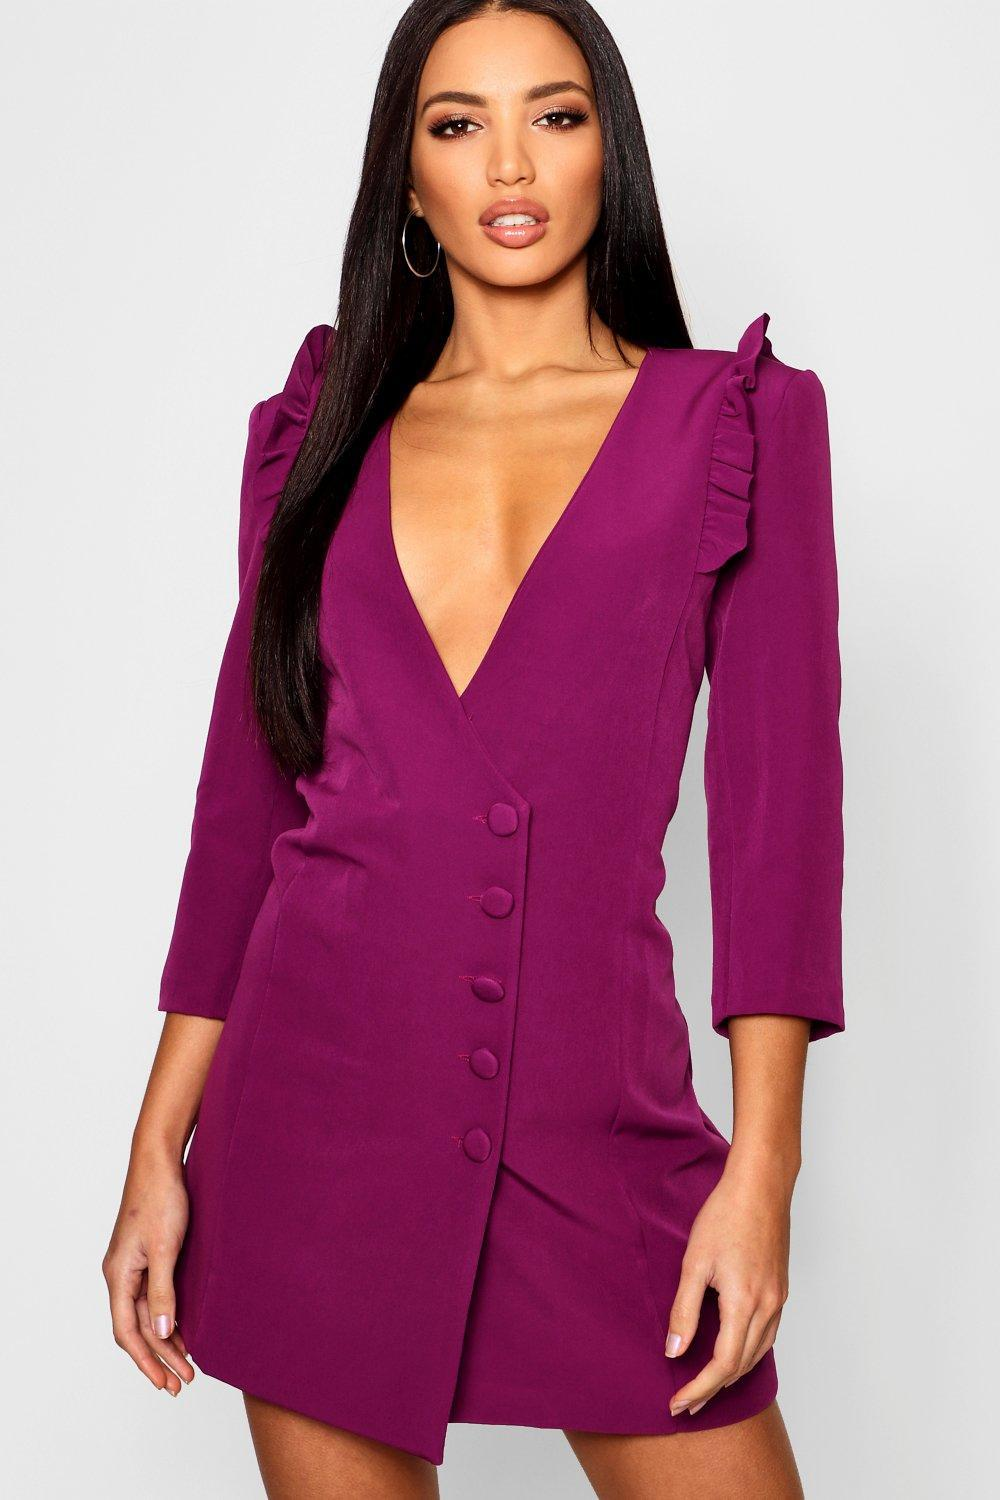 7e16cce47cc9 Boohoo Woven Ruffle Shoulder Button Detail Blazer Dress in Purple - Lyst